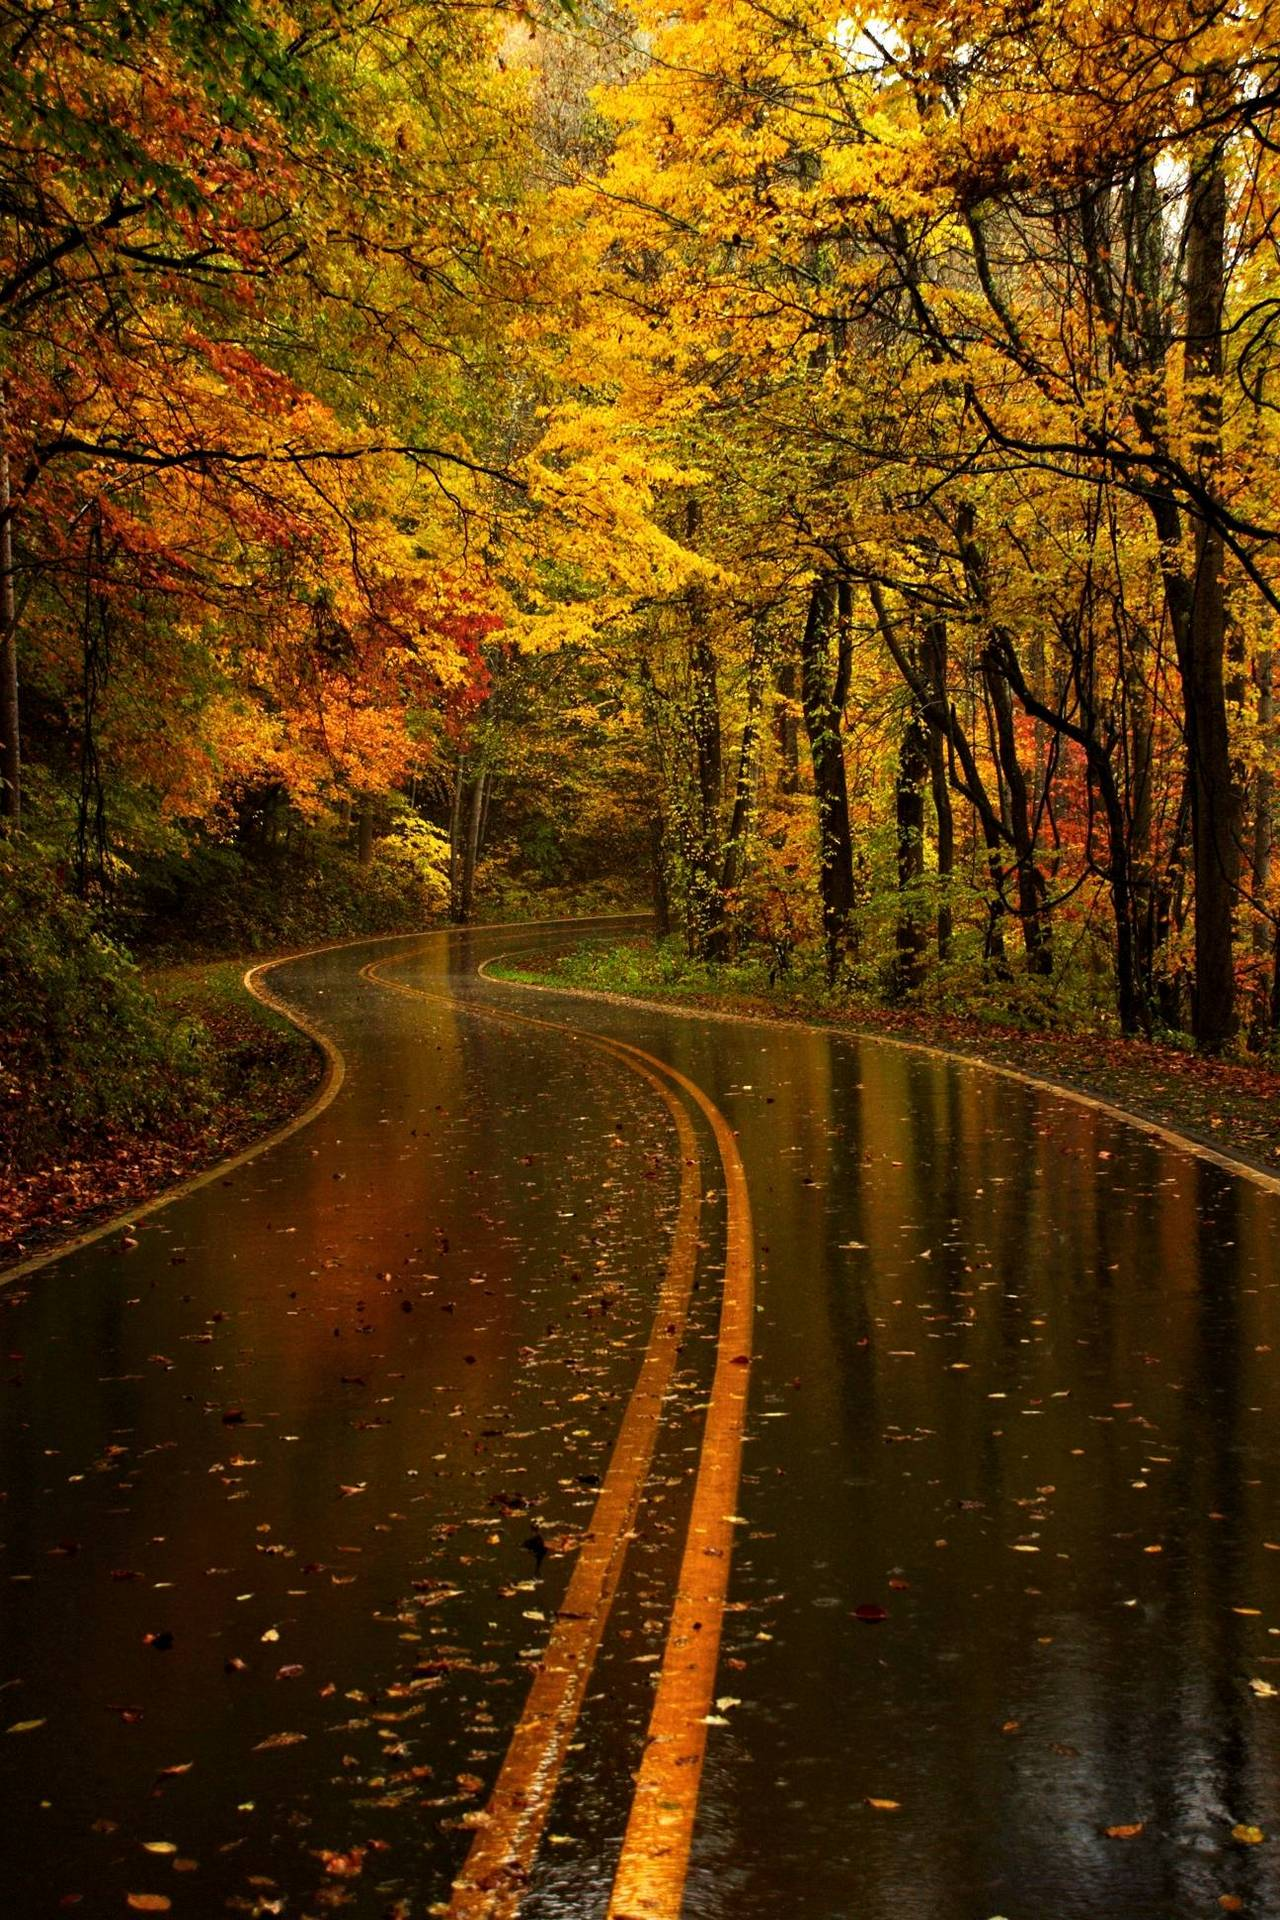 Autumn Road Moist Leaves Orange Forest 1280x1920